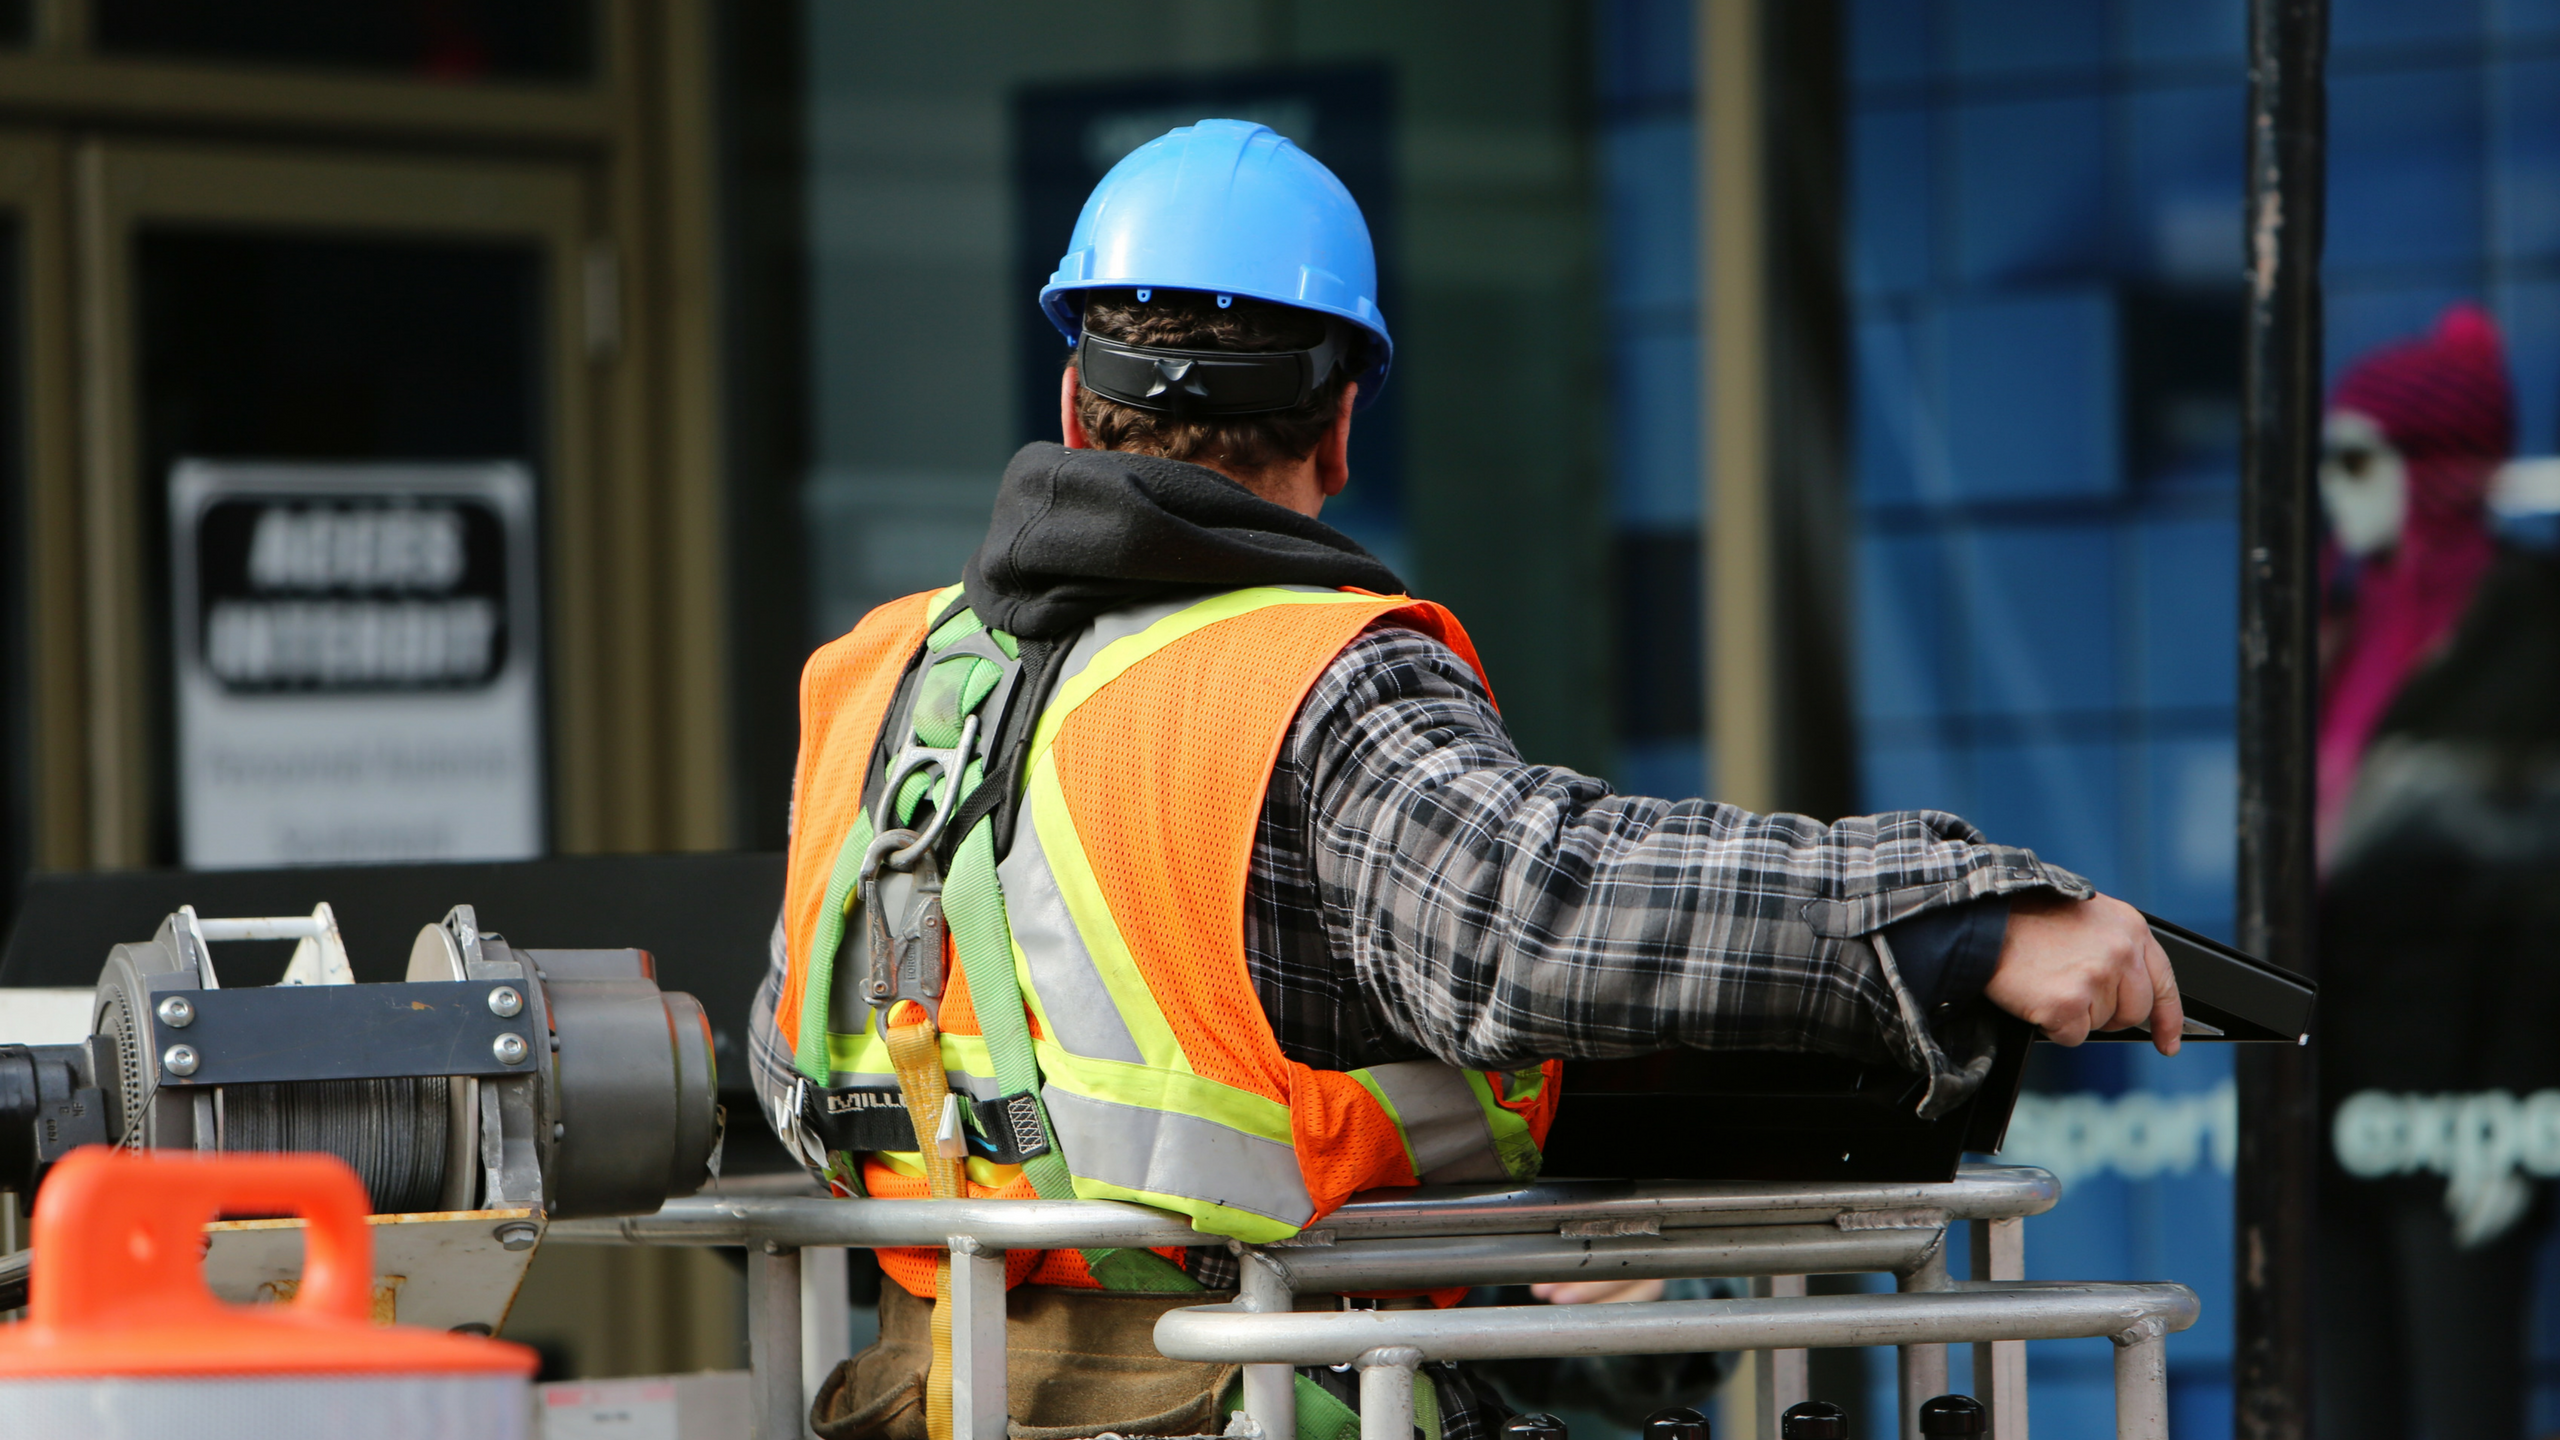 5 Methods for Motivating Your Field Service Techs